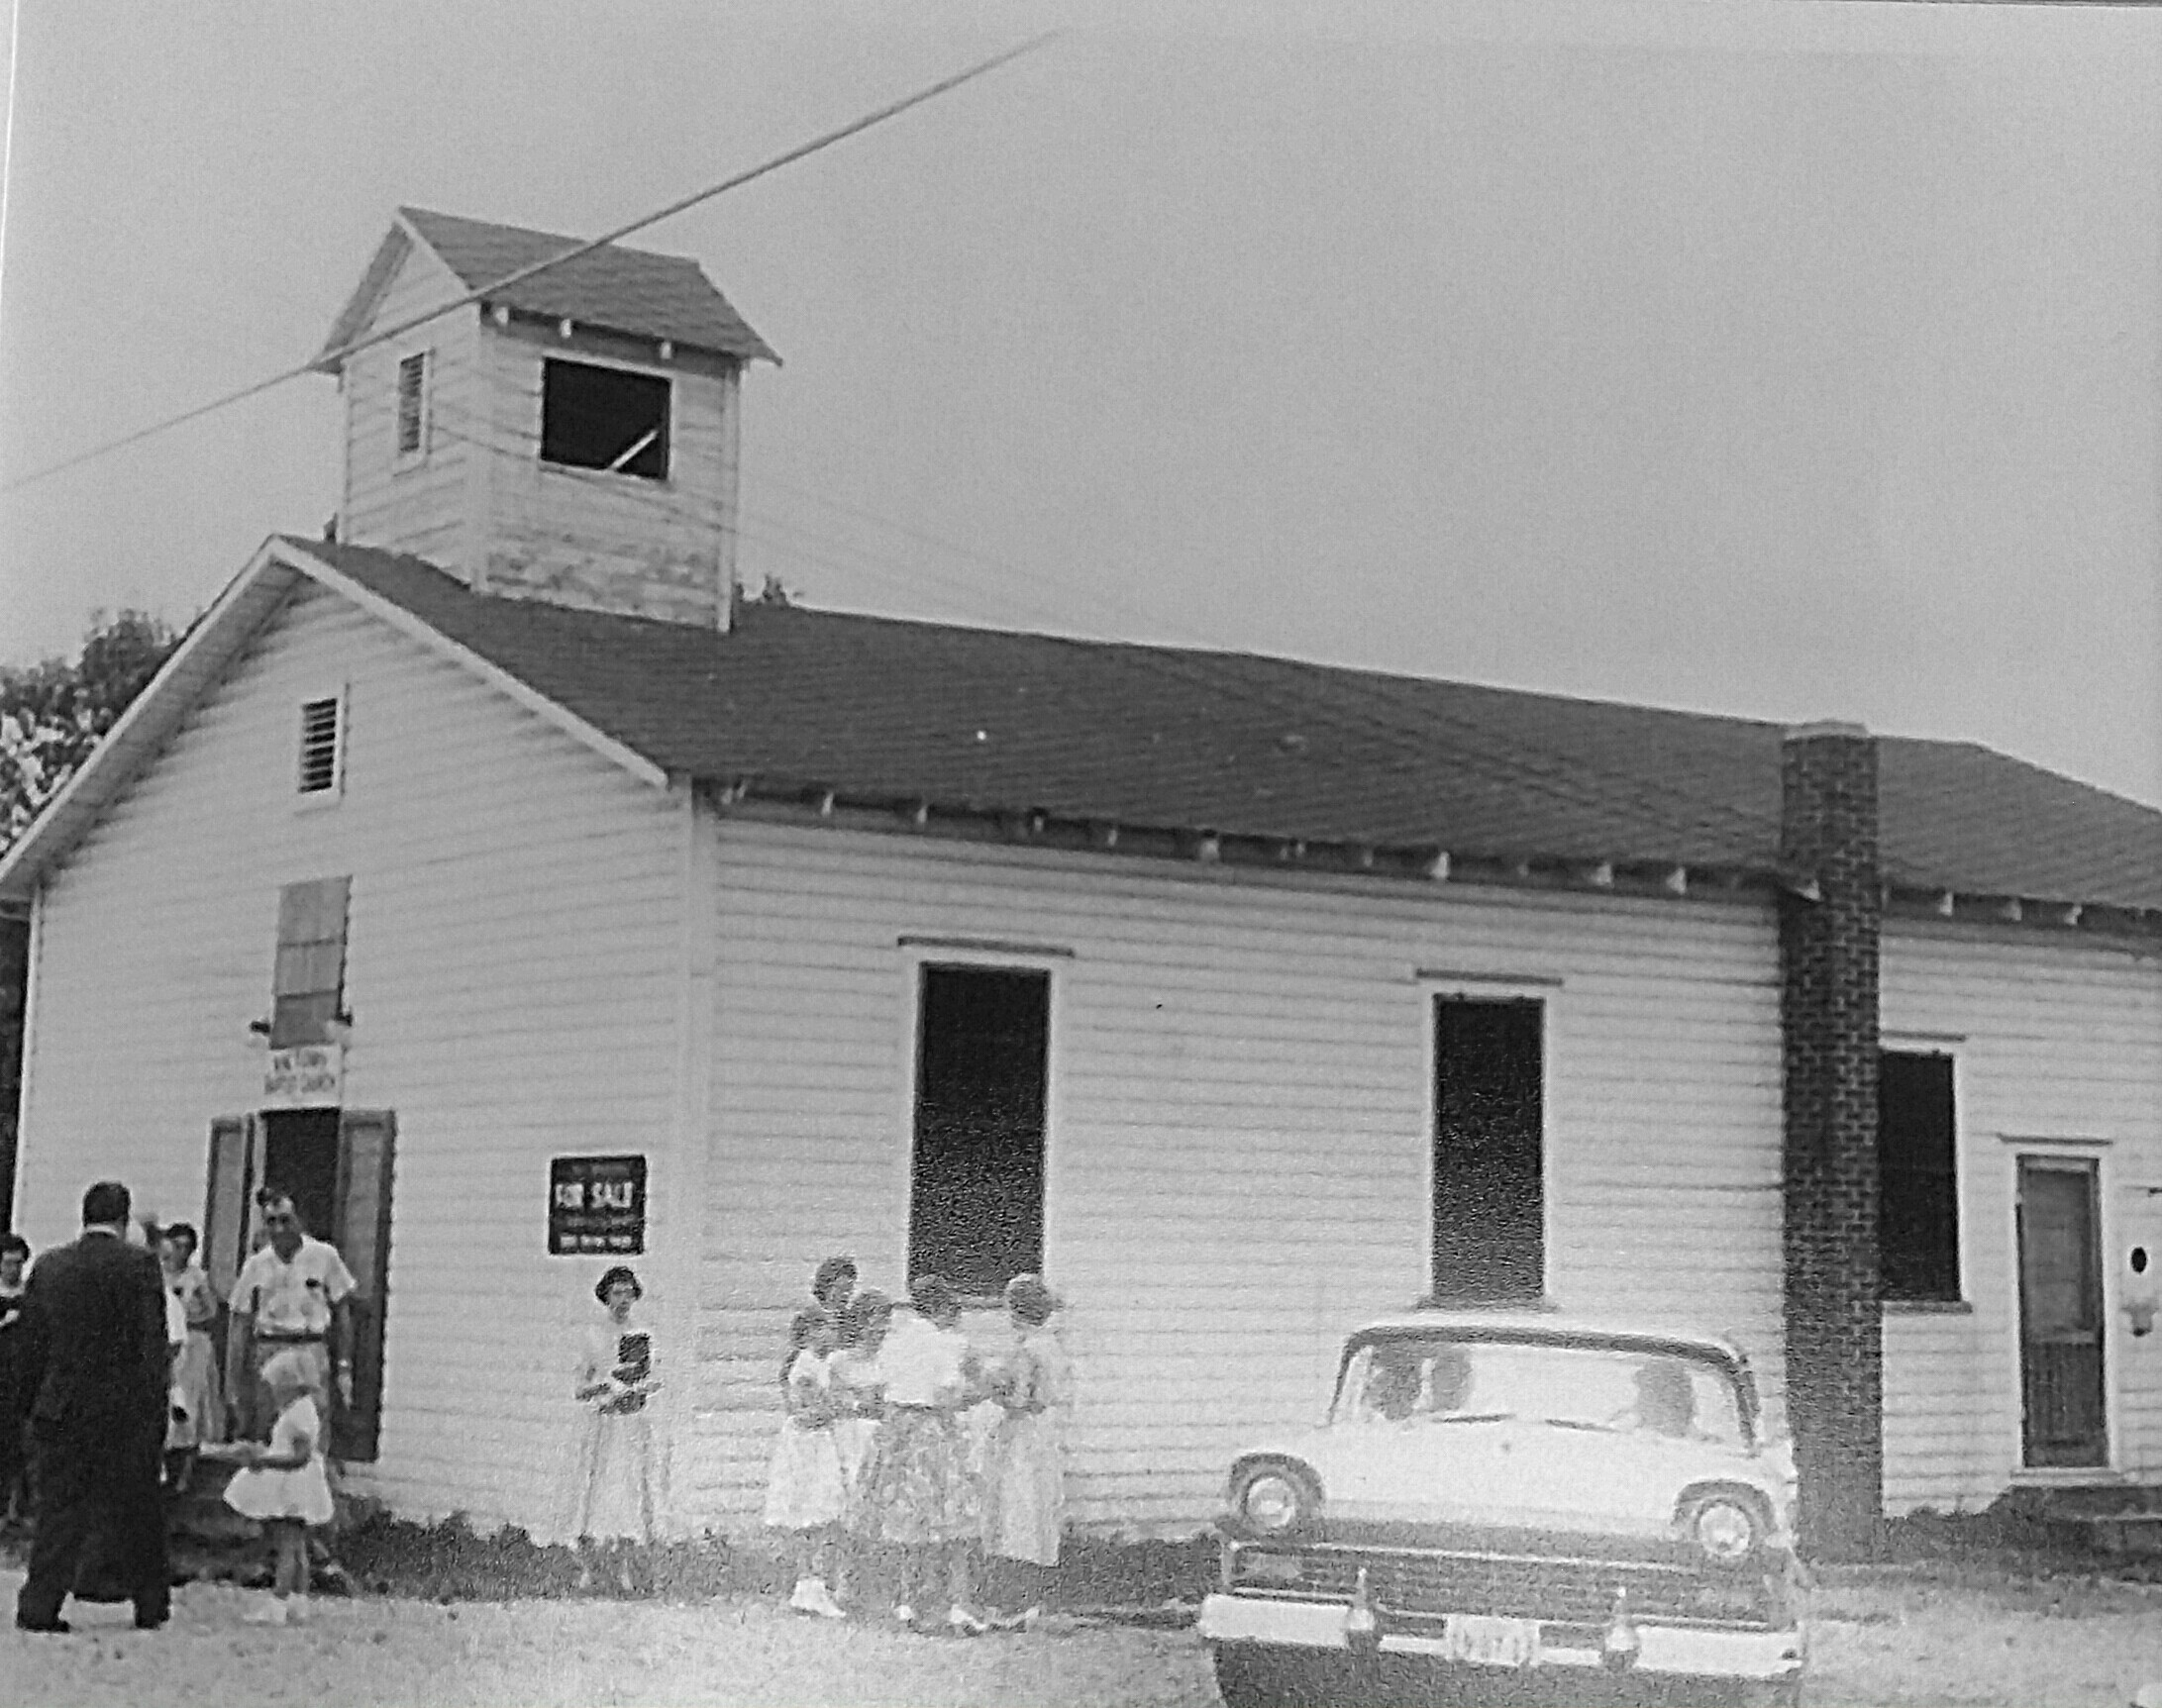 The original building for West Cleveland Baptist Church was built in 1942.